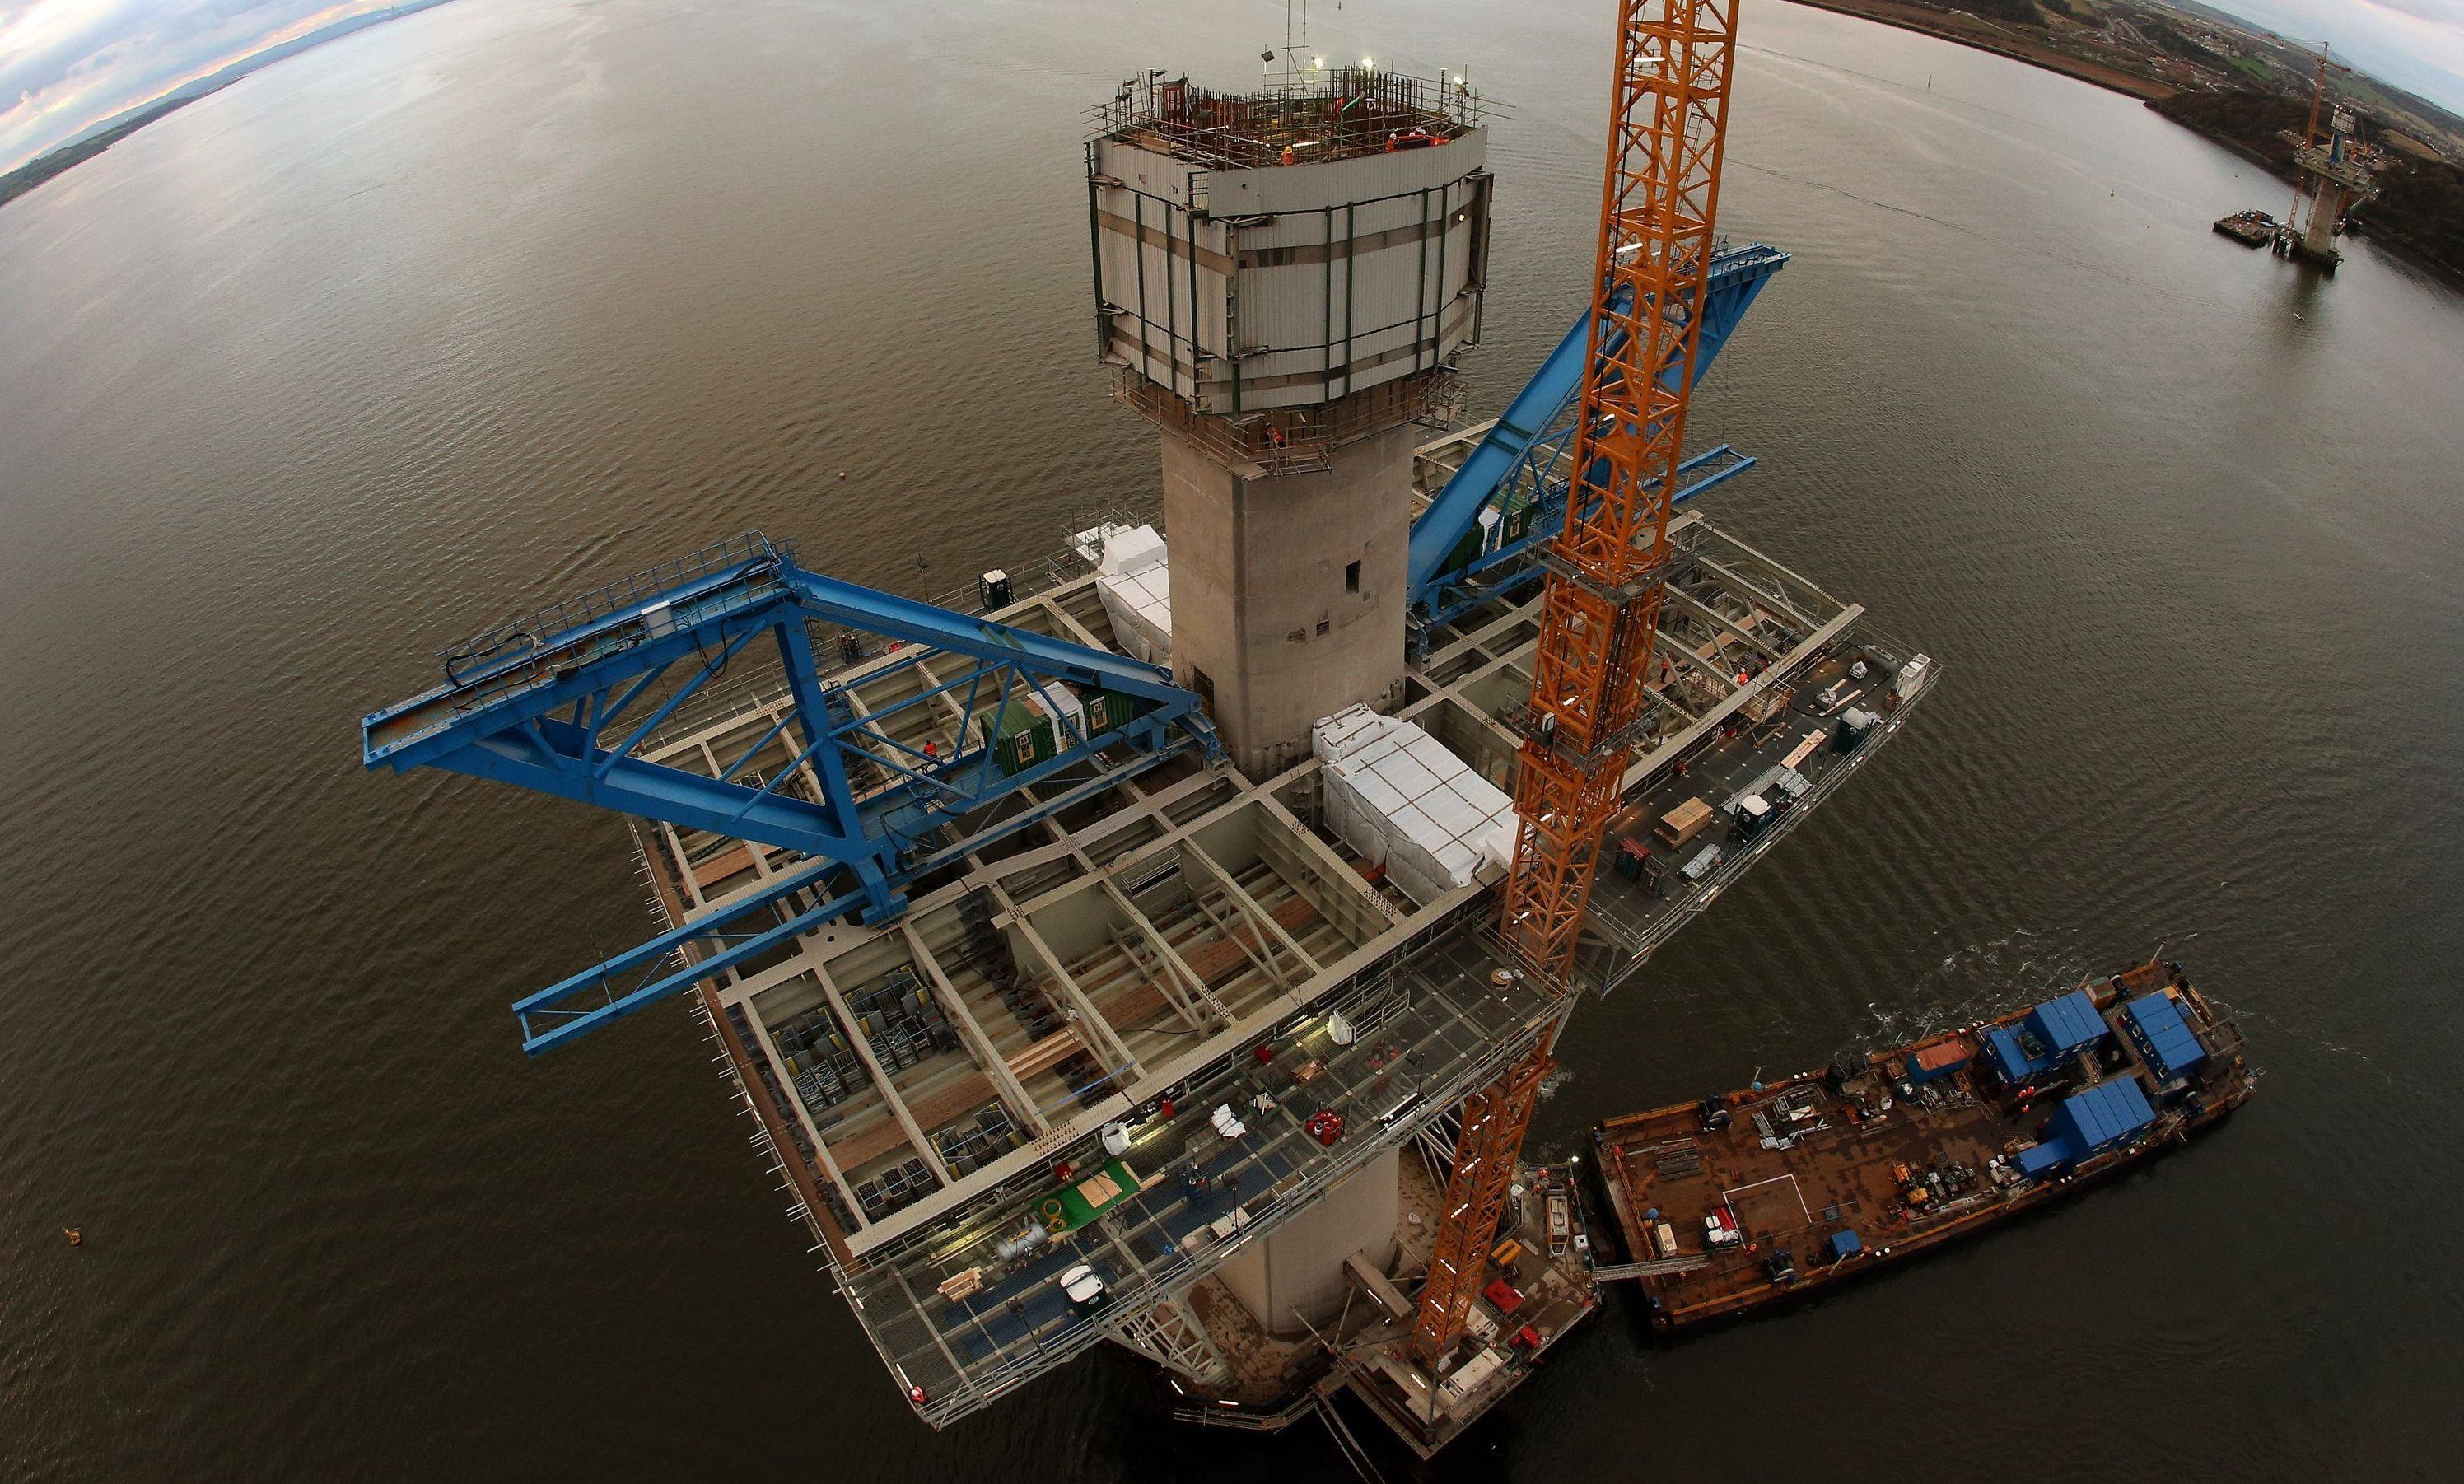 Construction crews working on the Queensferry Crossing's central tower on Beamer Rock in 2014.